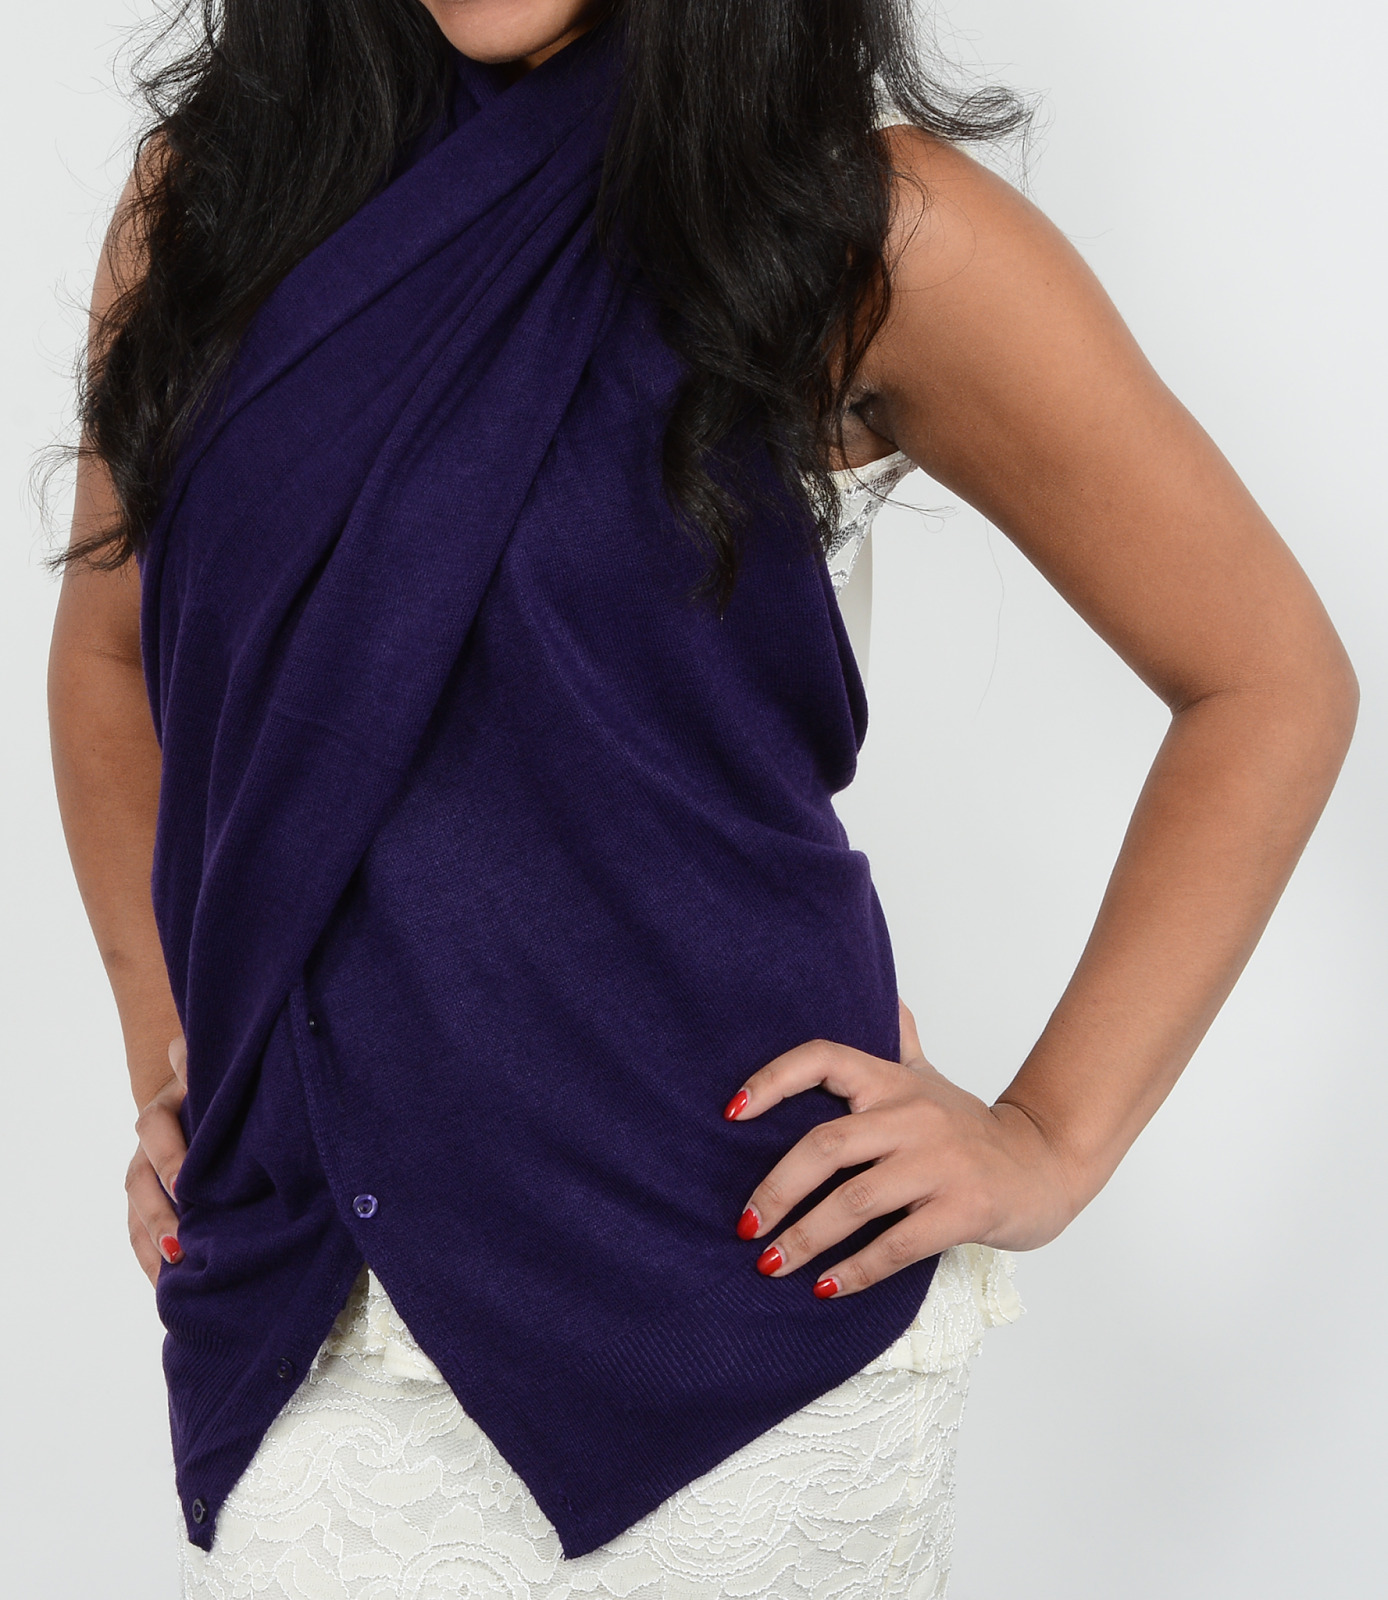 Purple color button scarf in criss cross halter neck style.